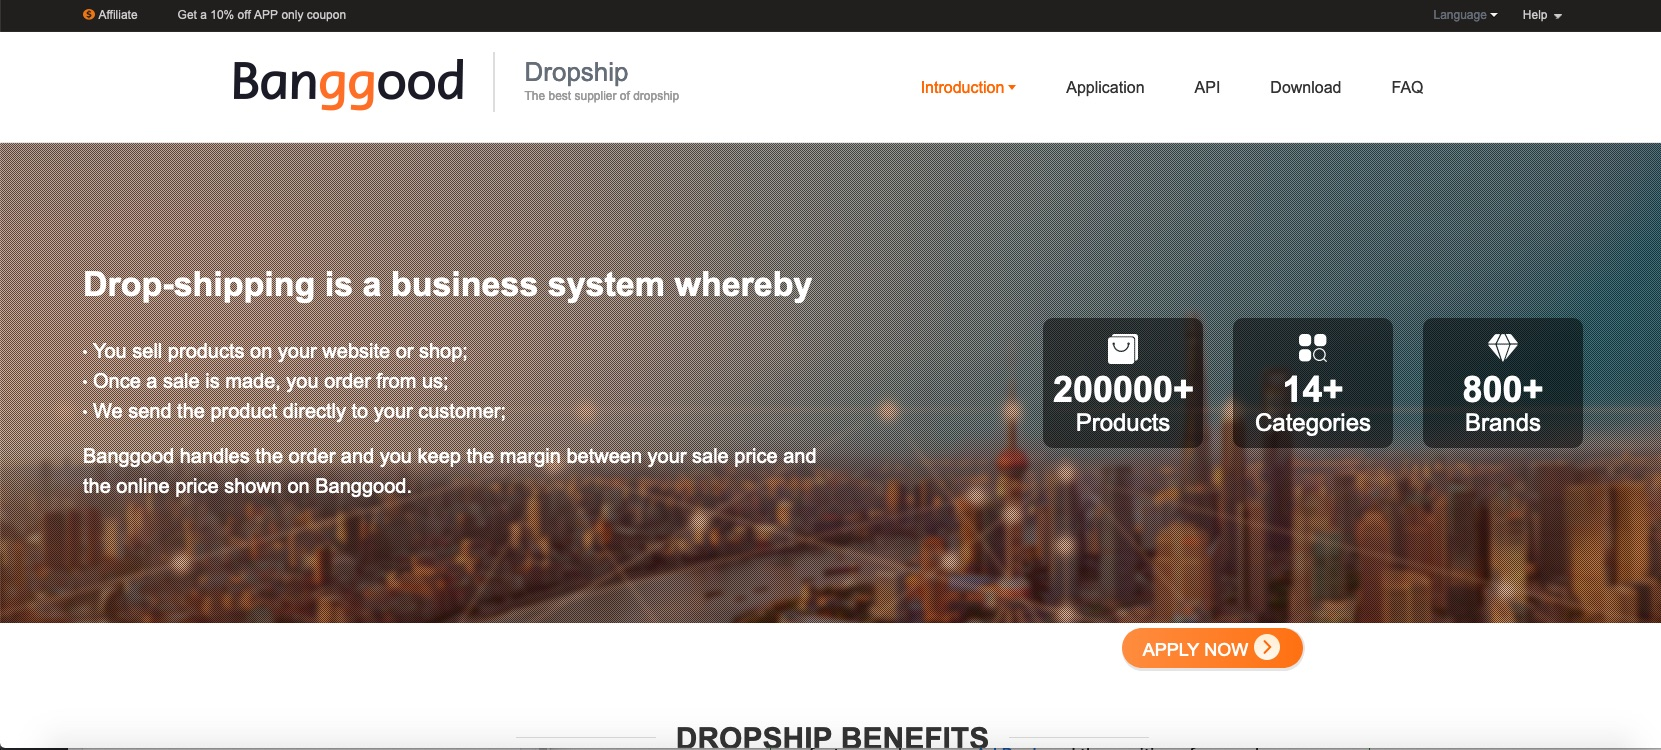 Banggood DropShipping API Credentials